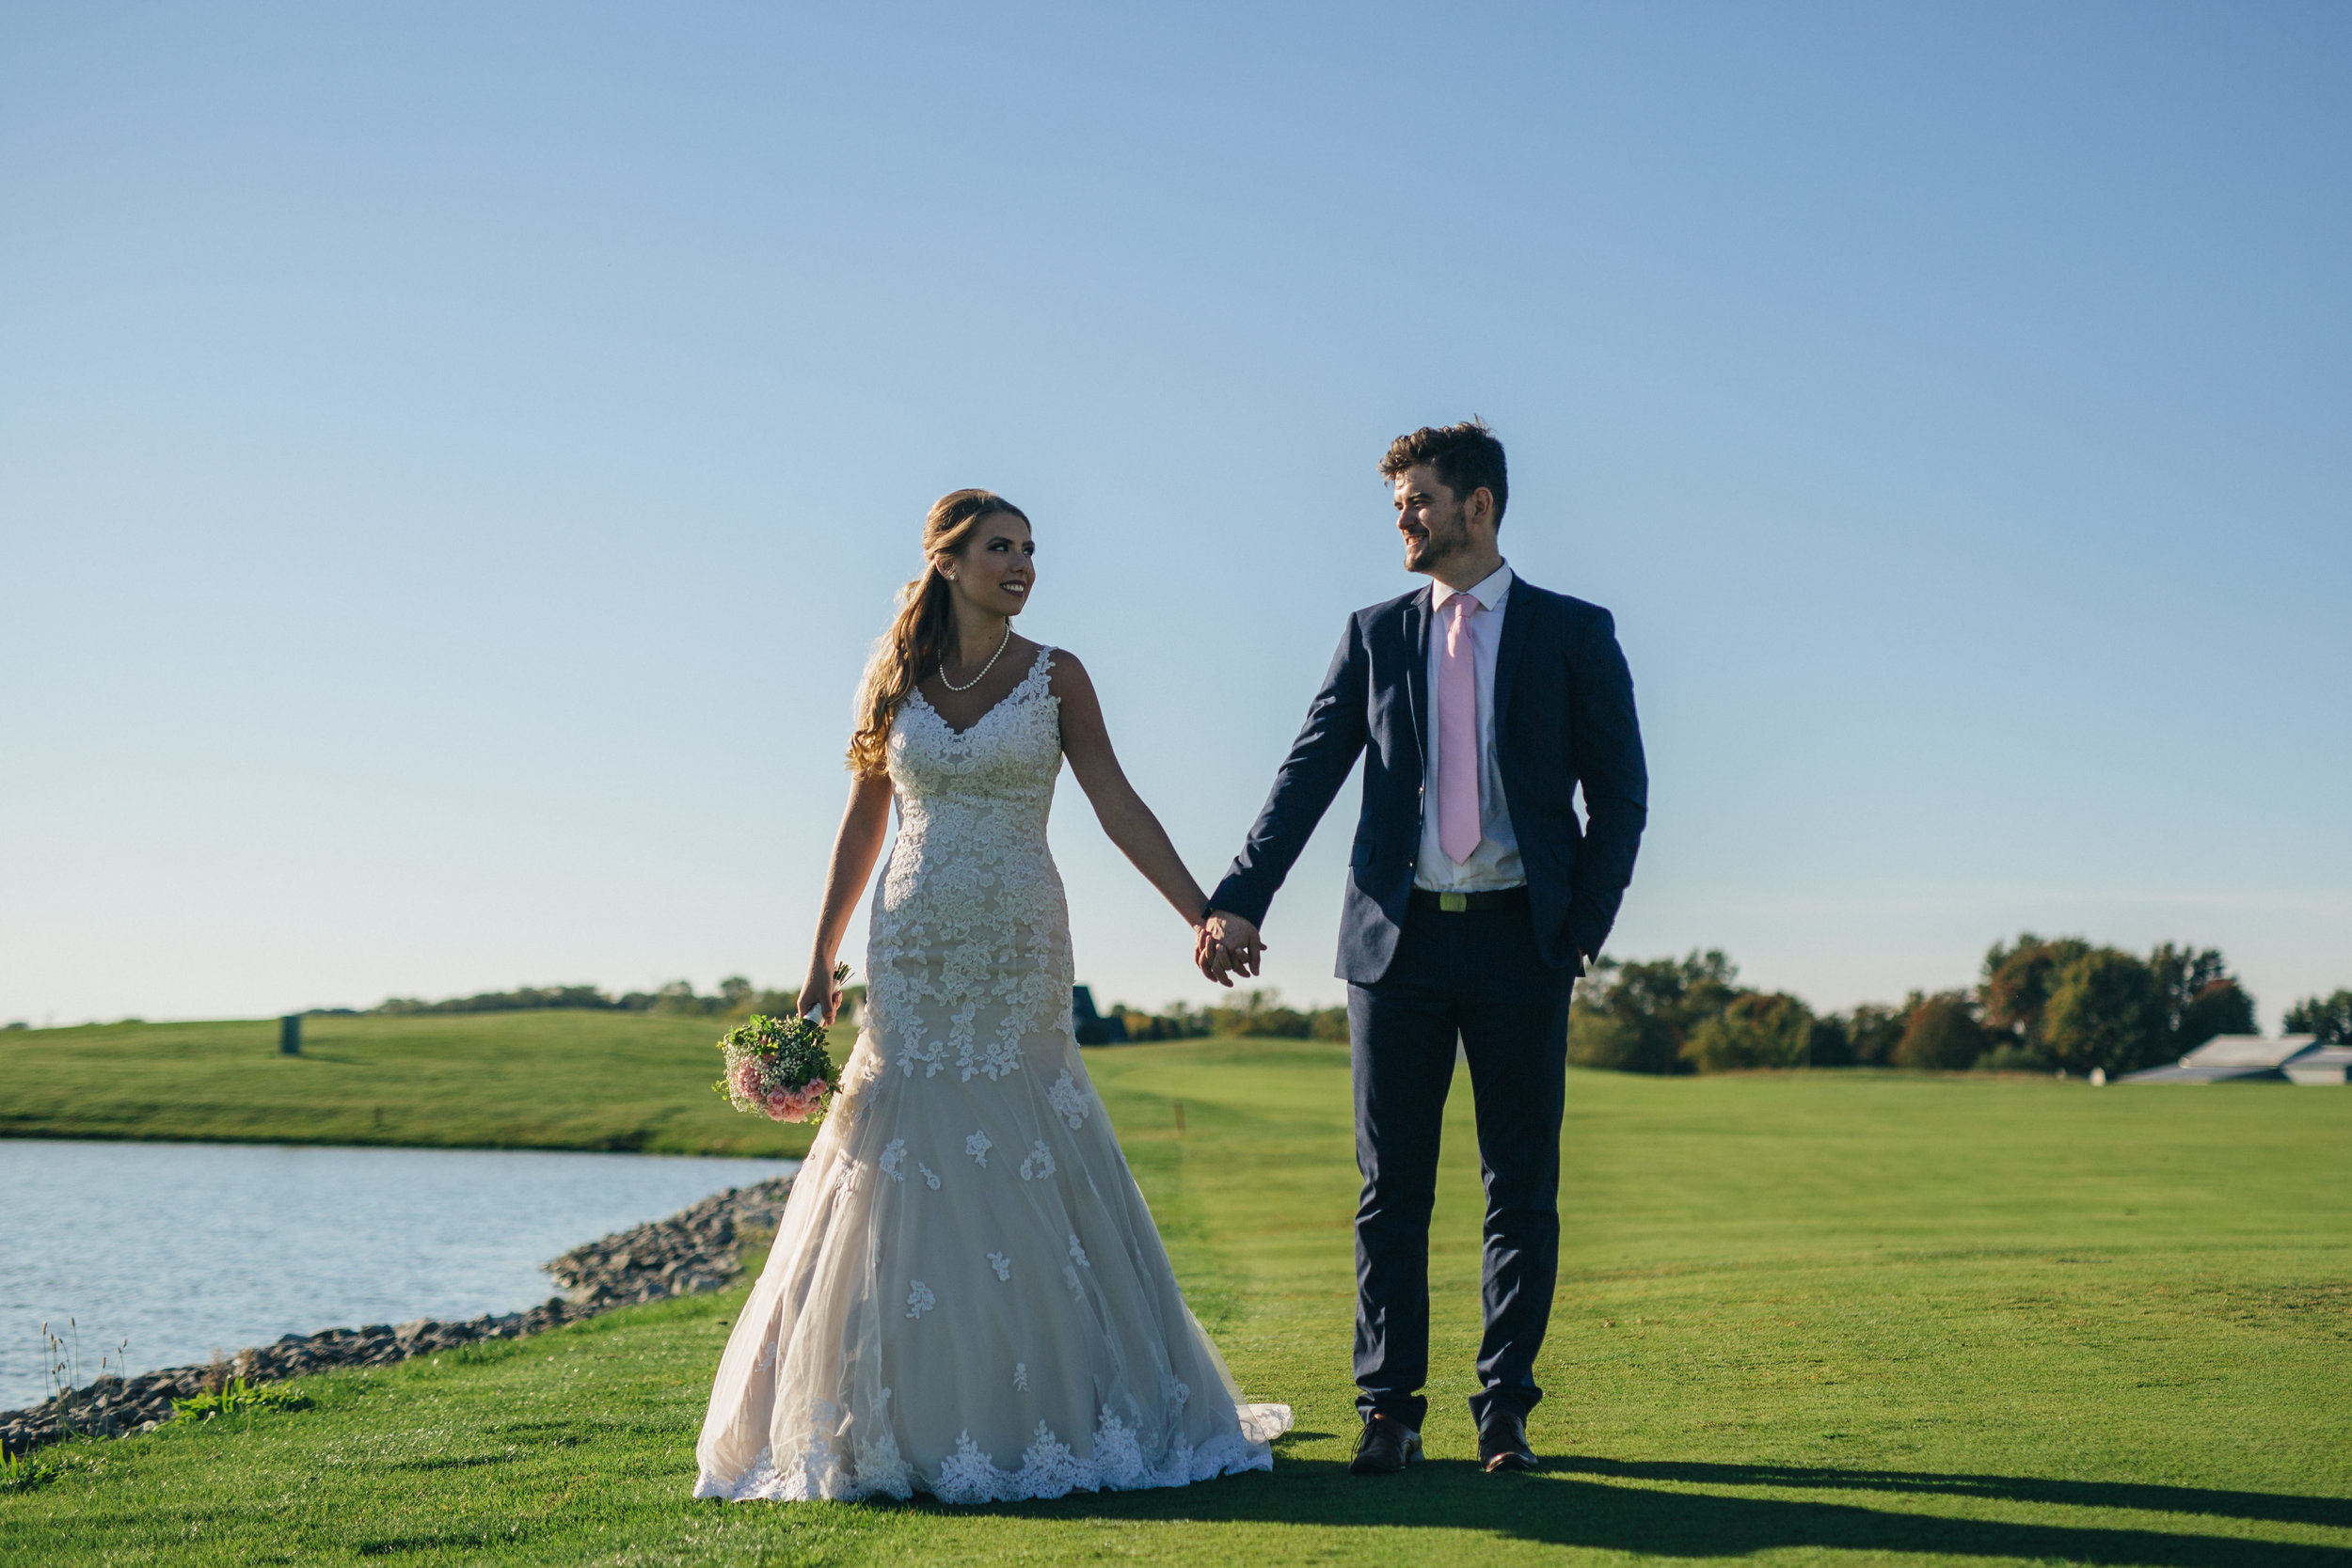 Bride and groom at Stone Ridge Golf Club in Bowling Green, Ohio.